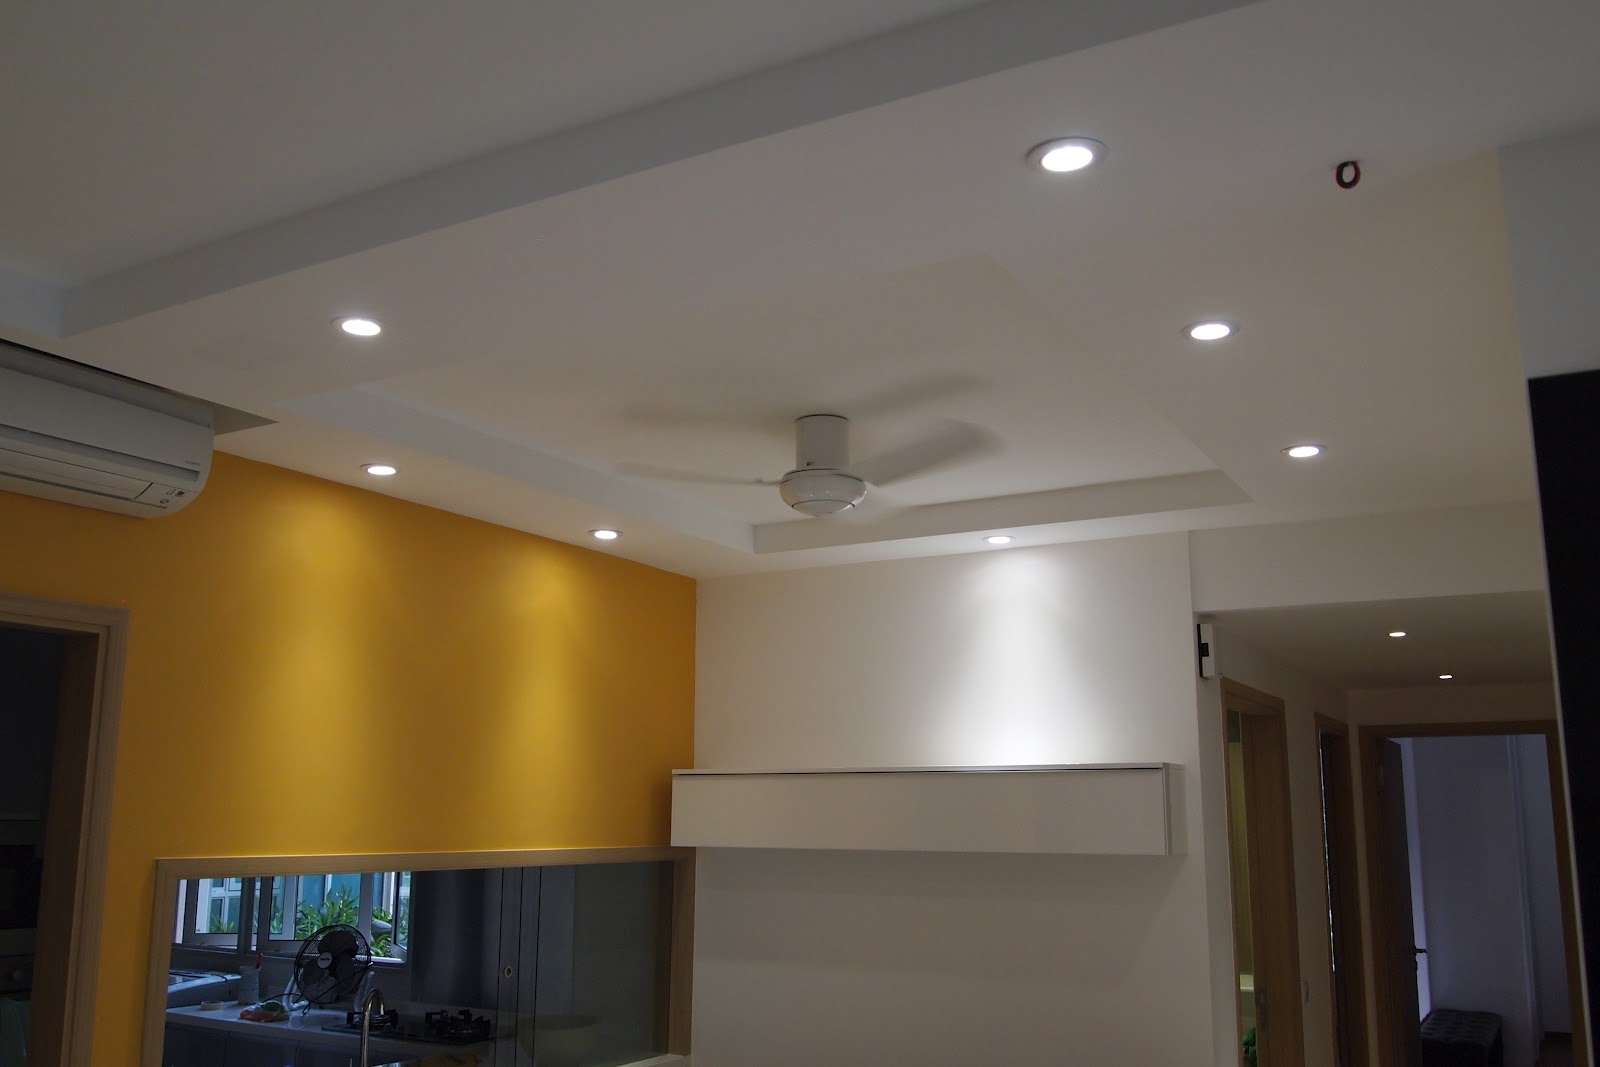 Ceiling Light Box Loose : Plaster ceiling partition drywall singapore the caspian